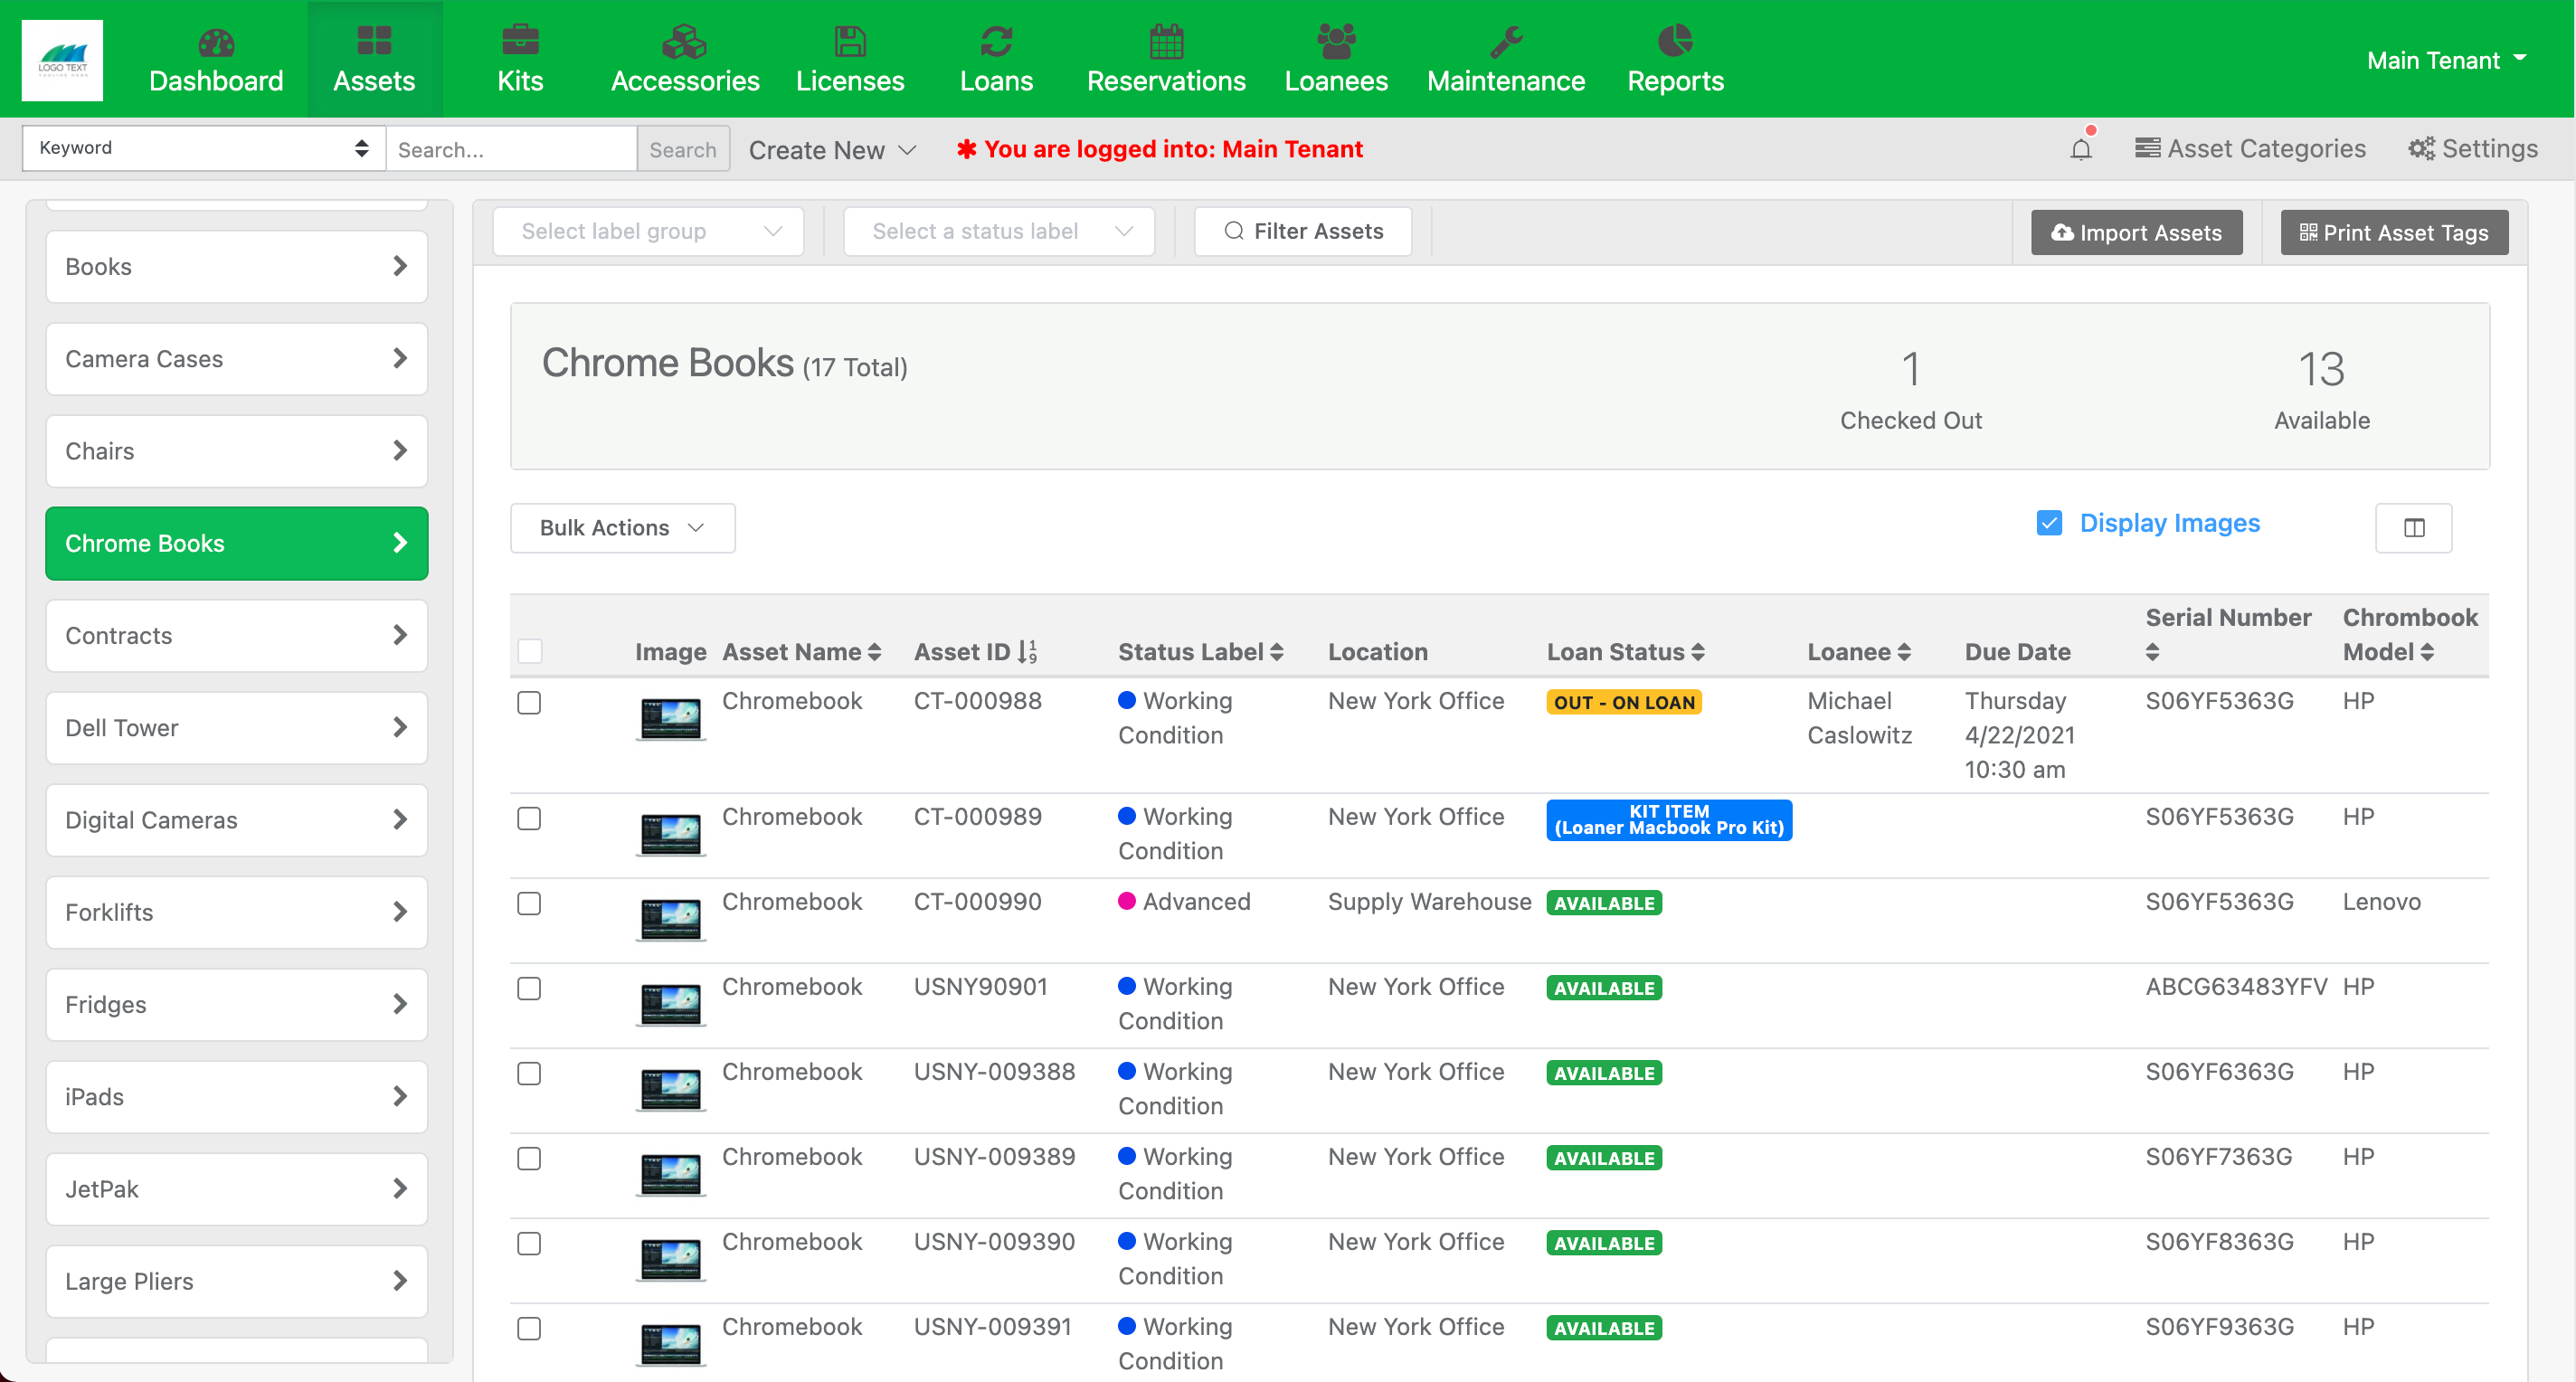 Assets are neatly displayed in organized categories